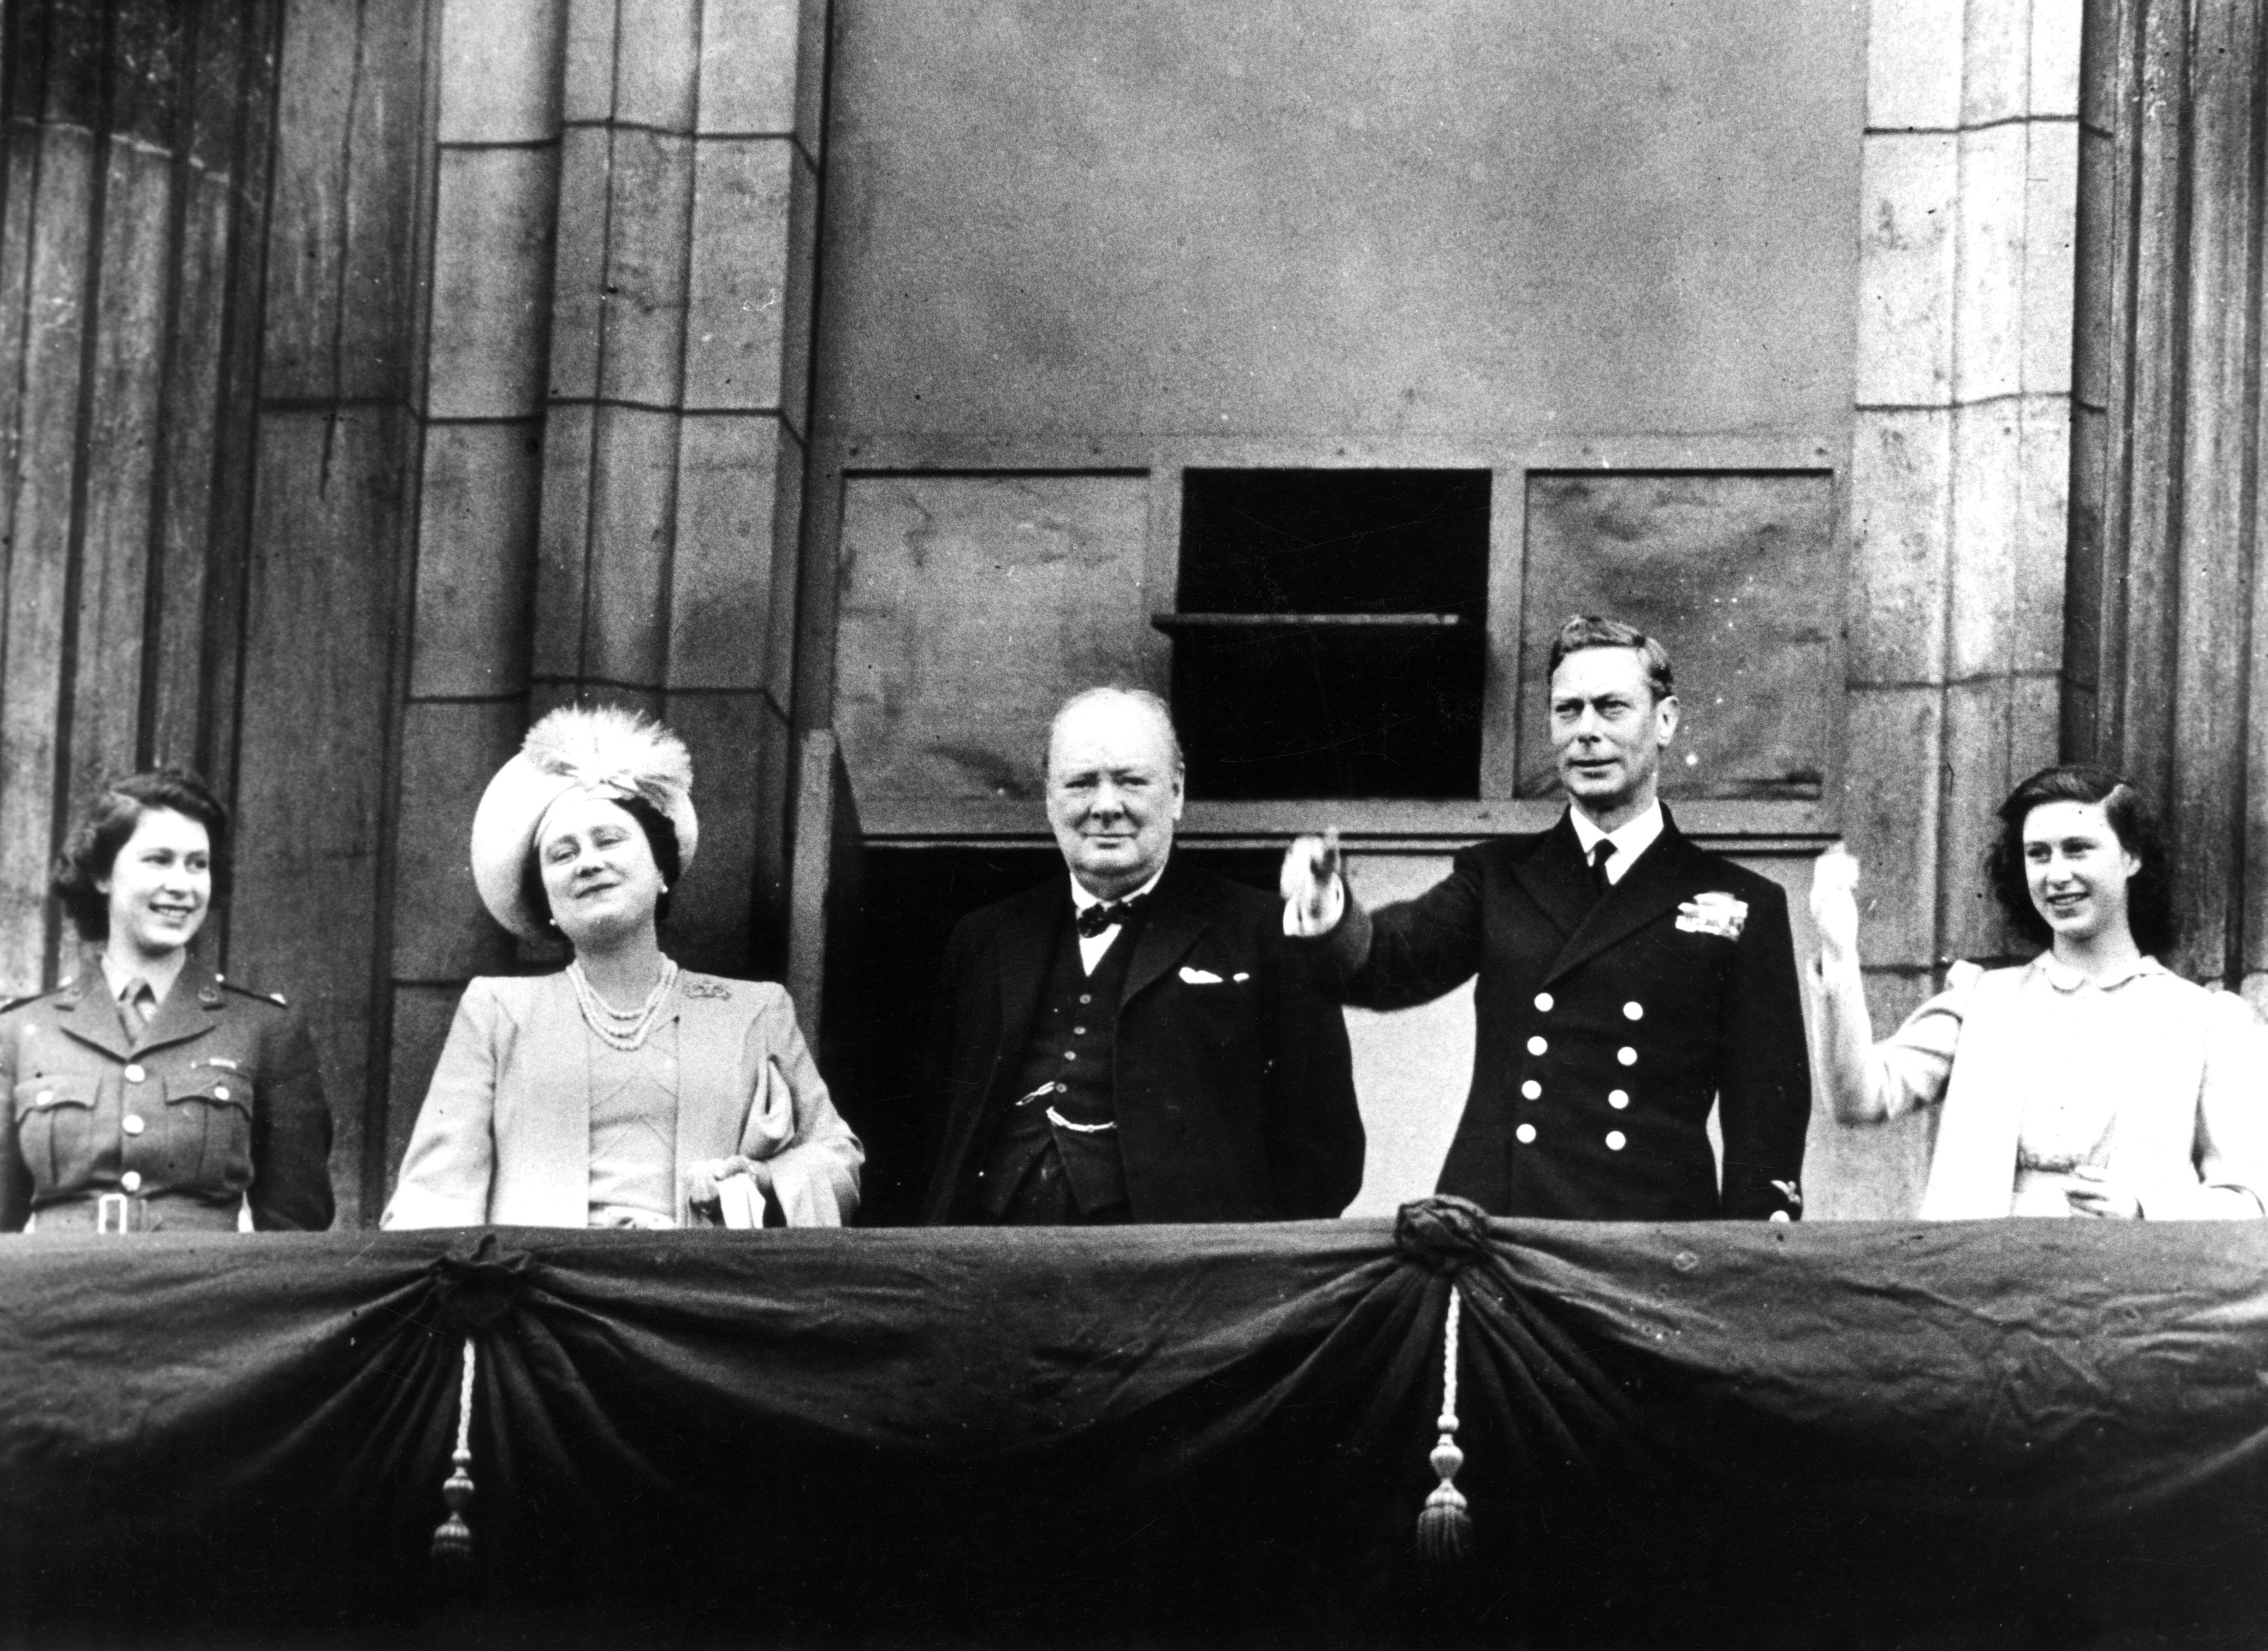 The Queen VE Day